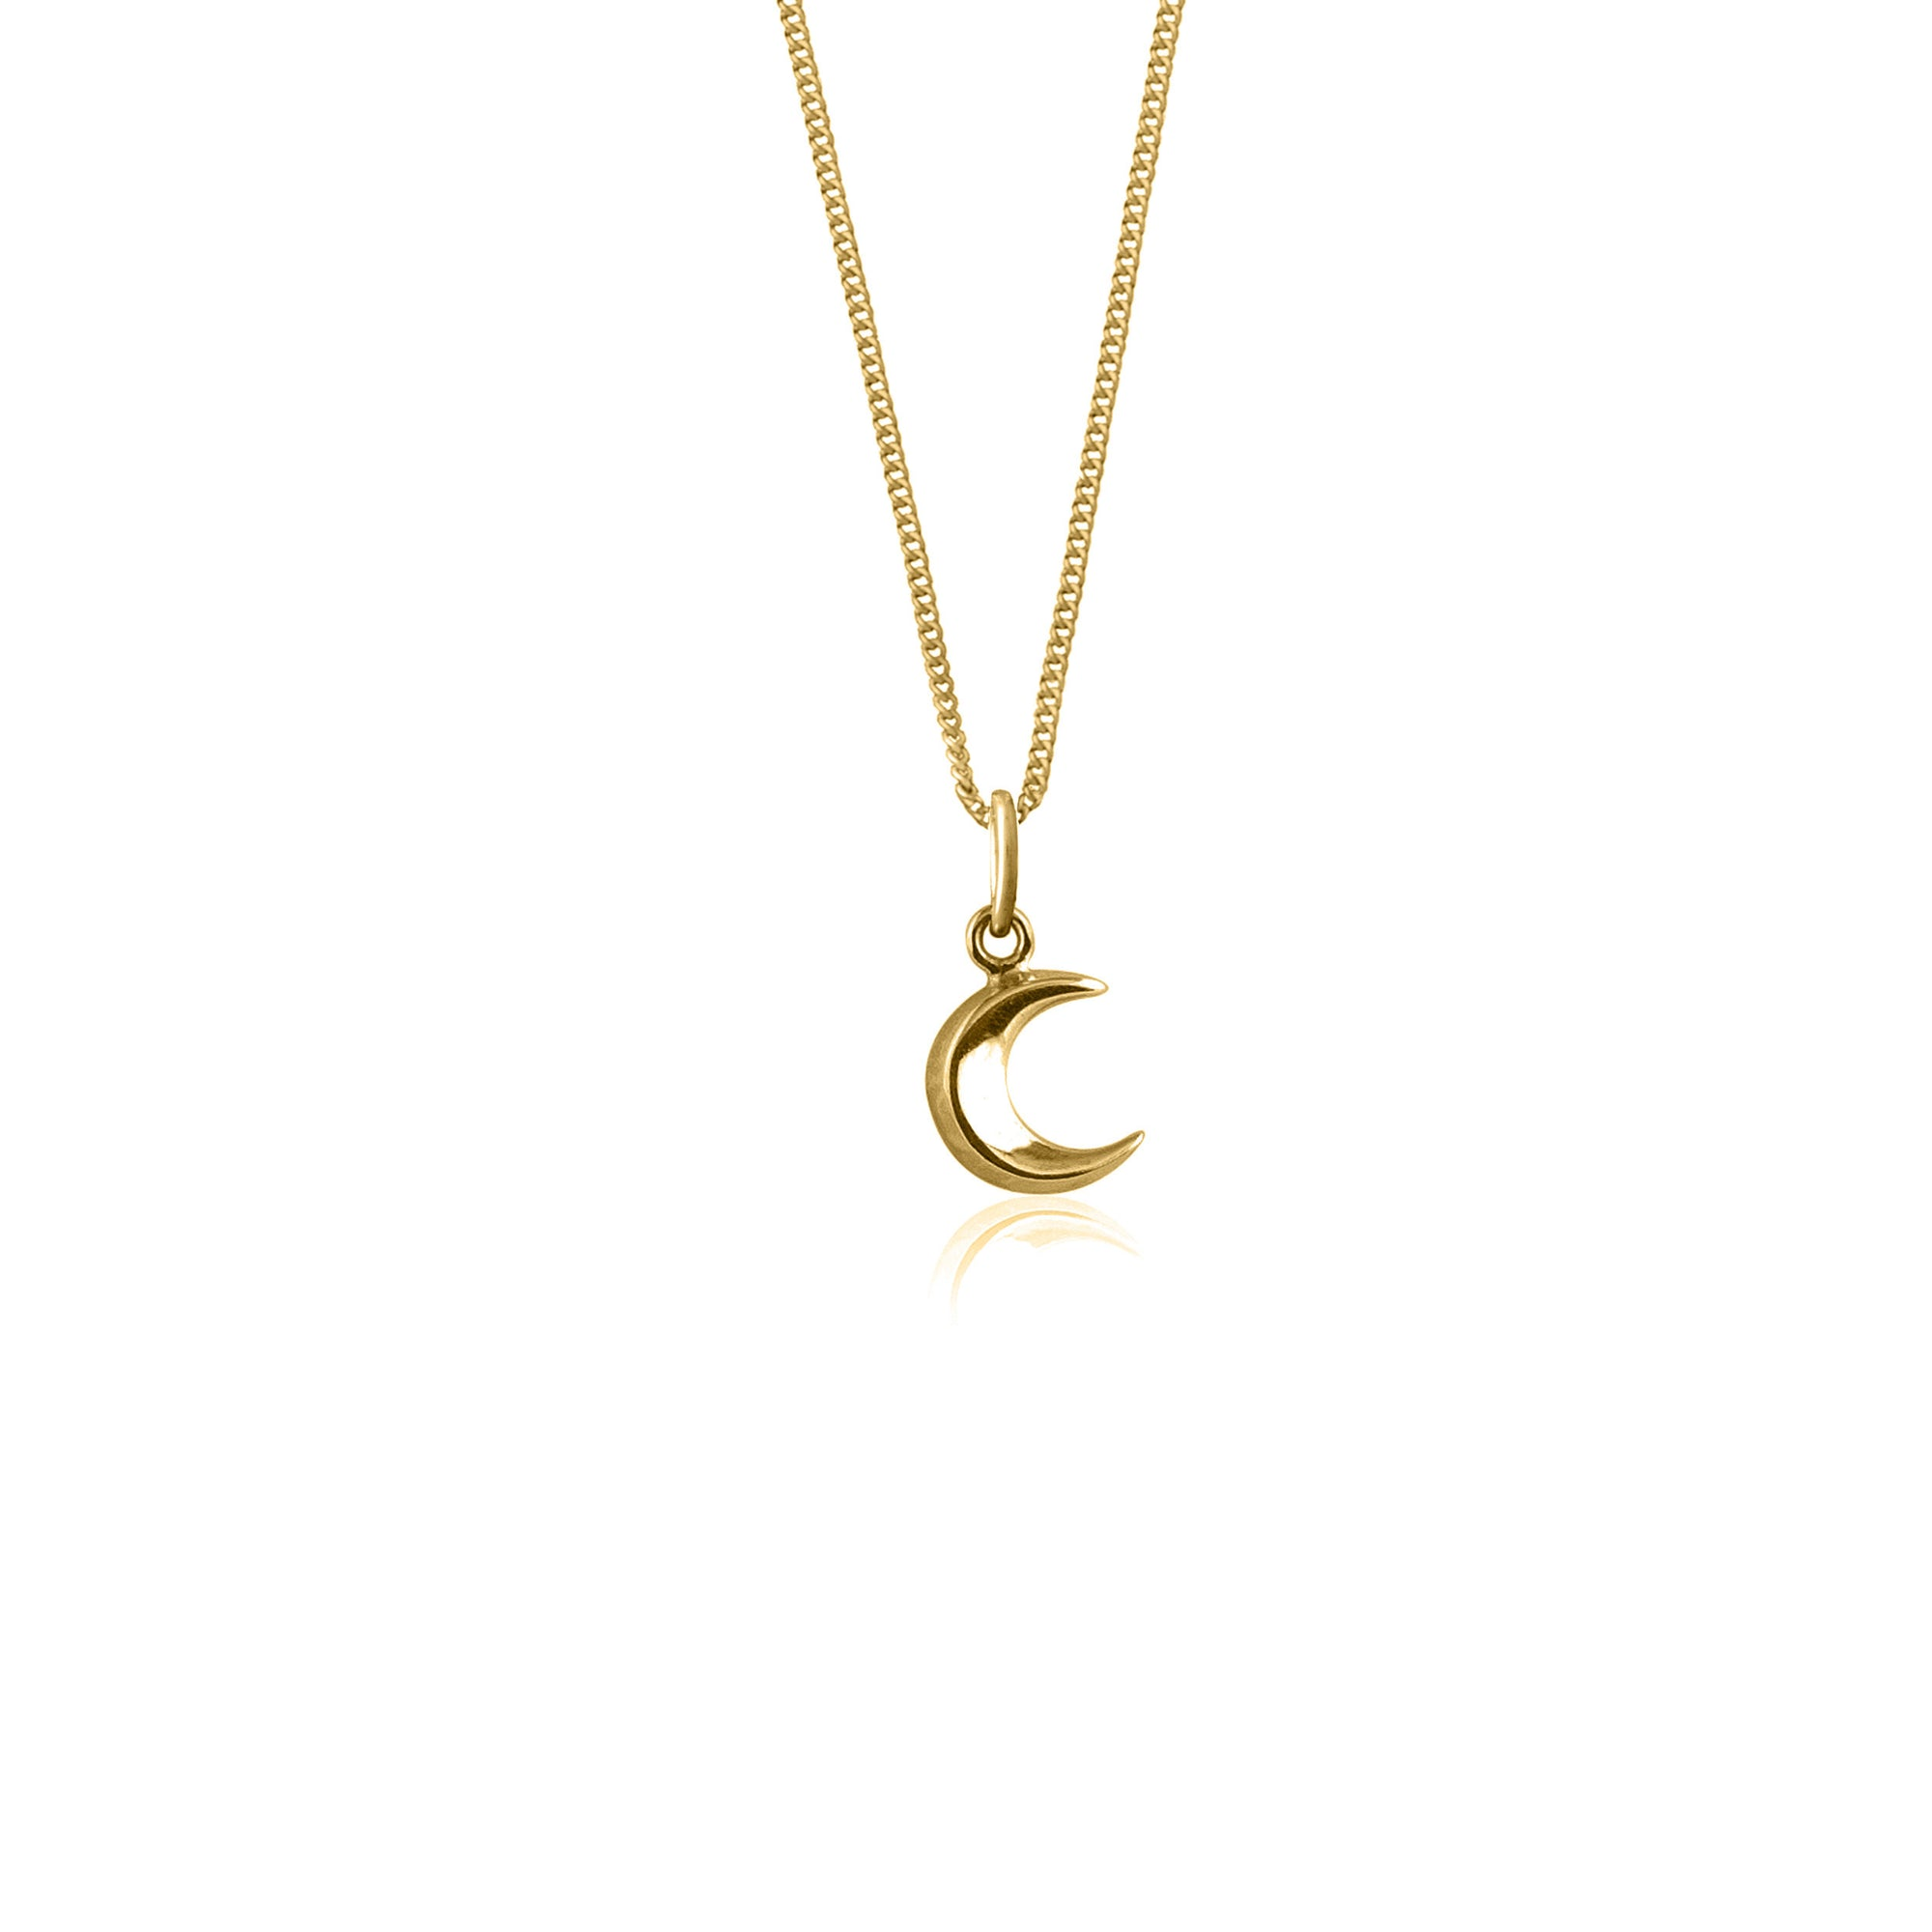 Luna & Rose - To The Moon and Back Charm Necklace in Gold